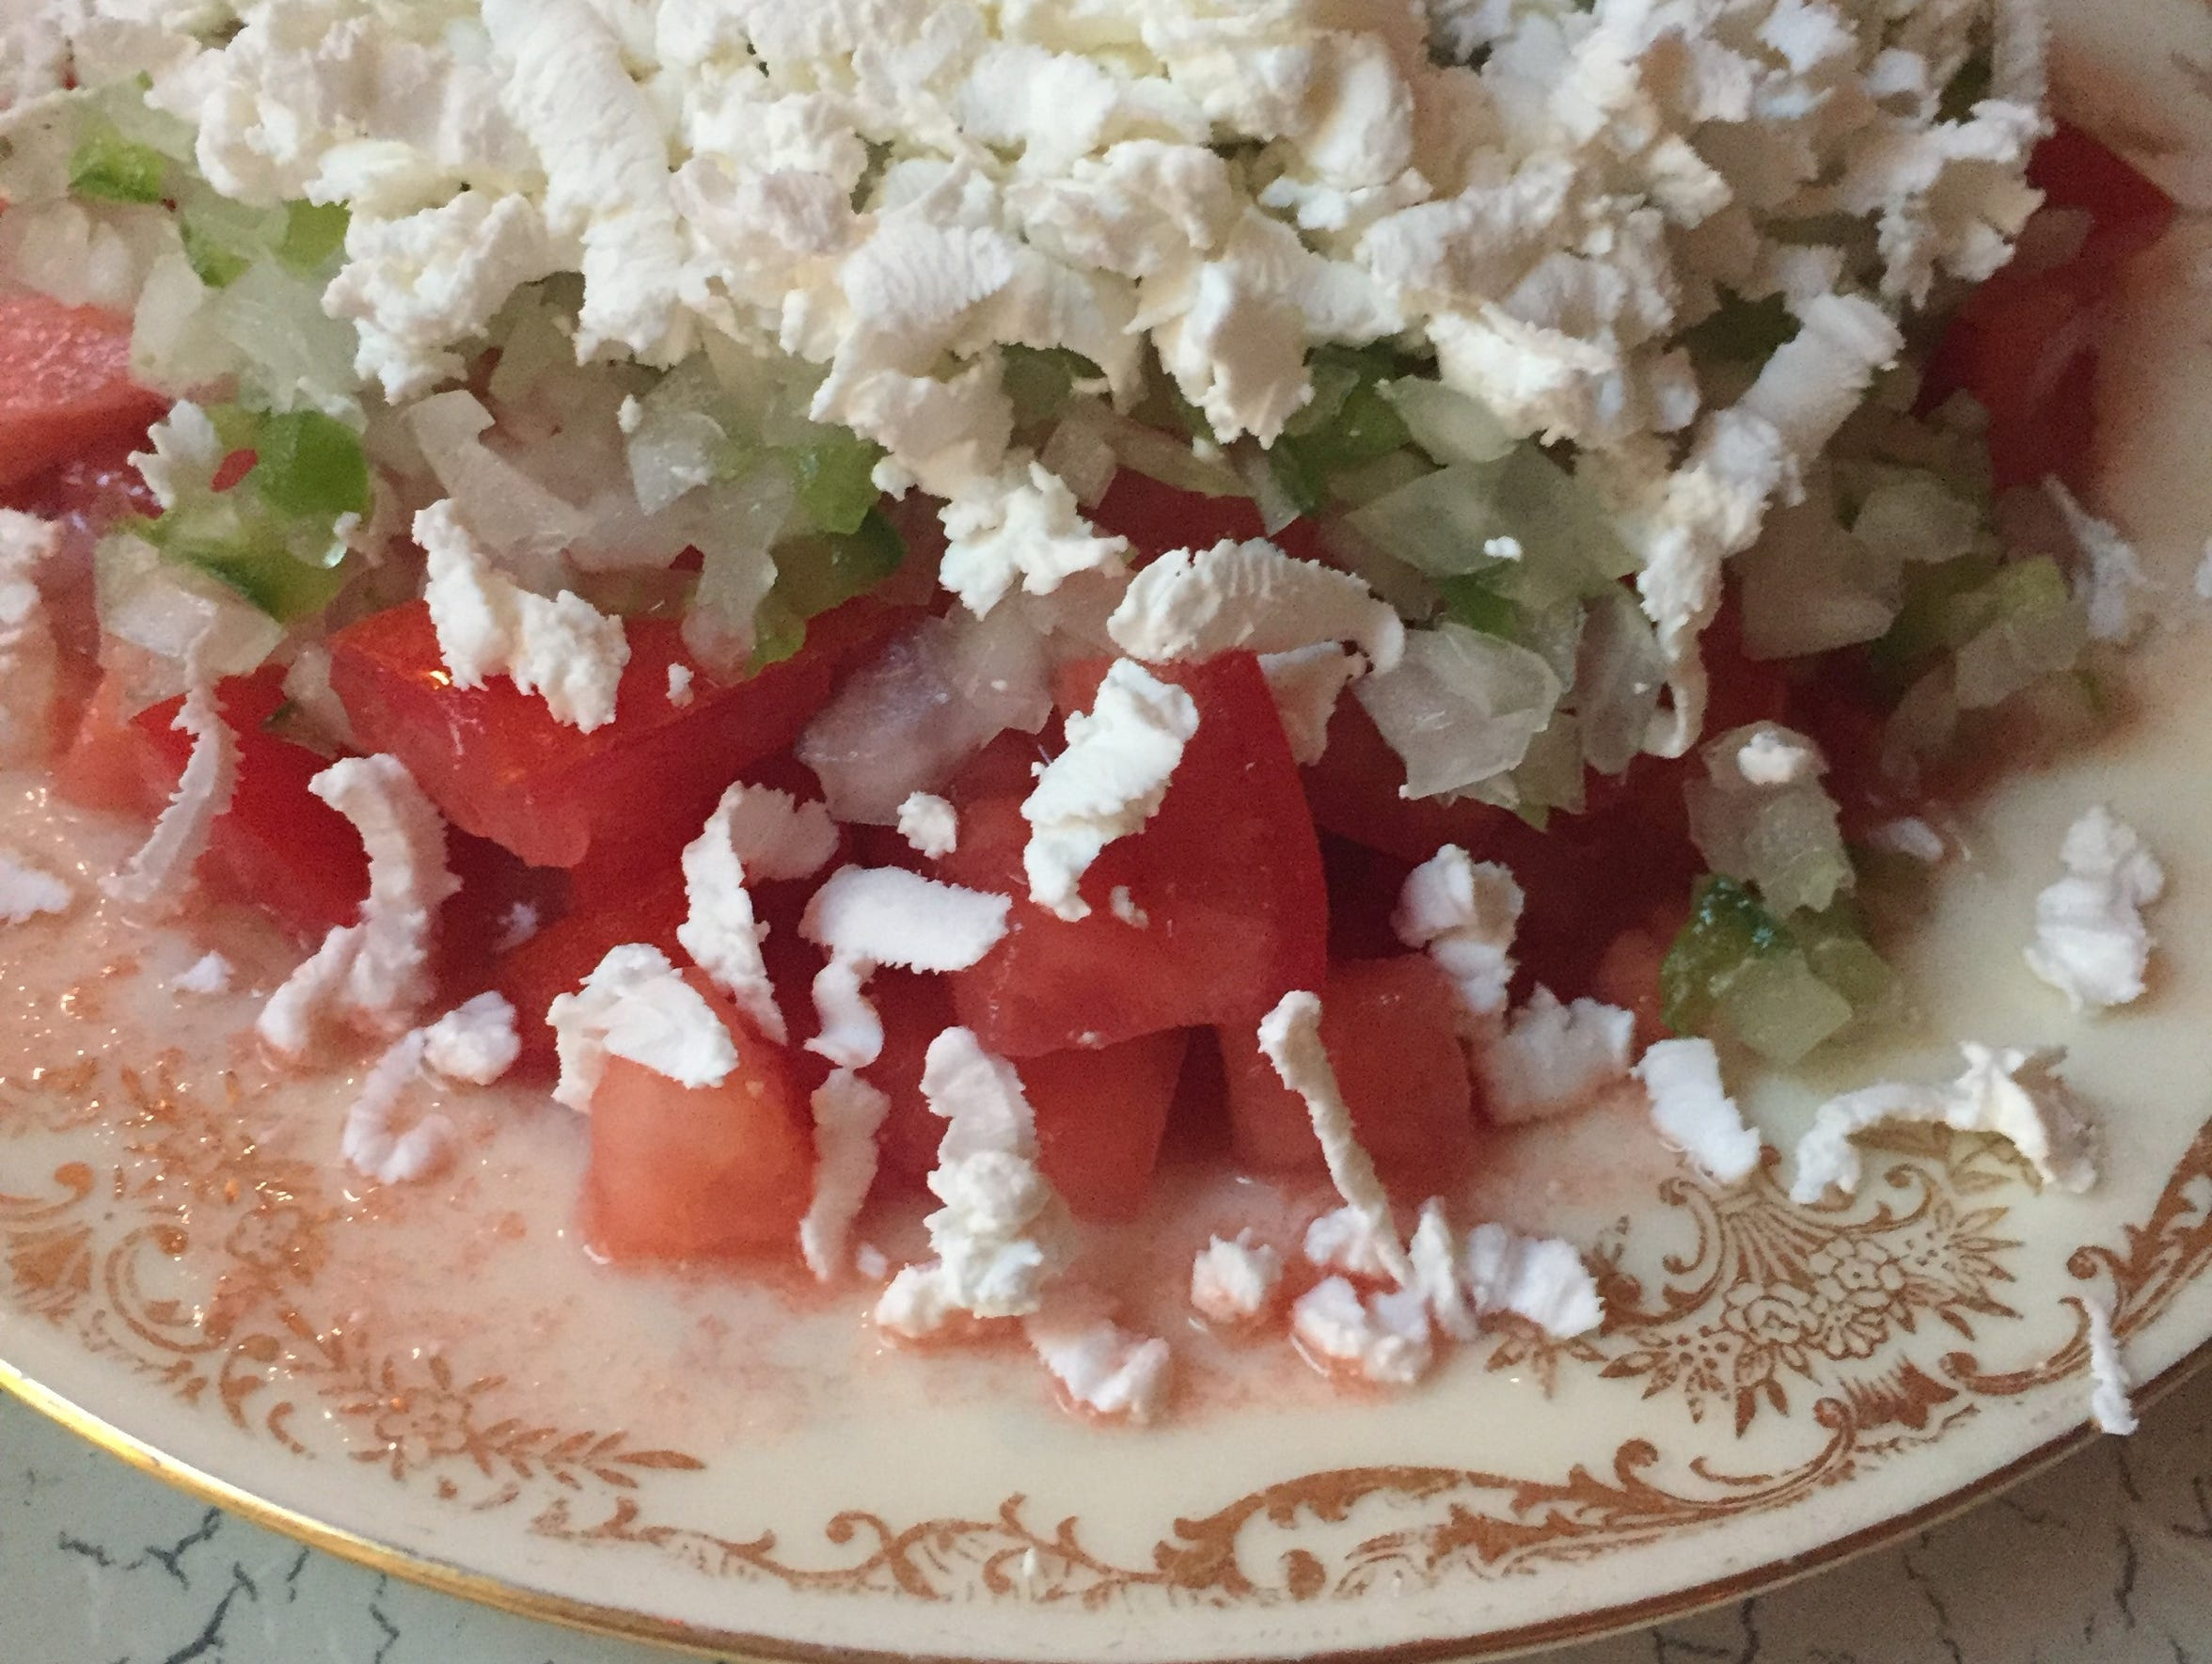 The Serbian tomato salad with onion and green pepper